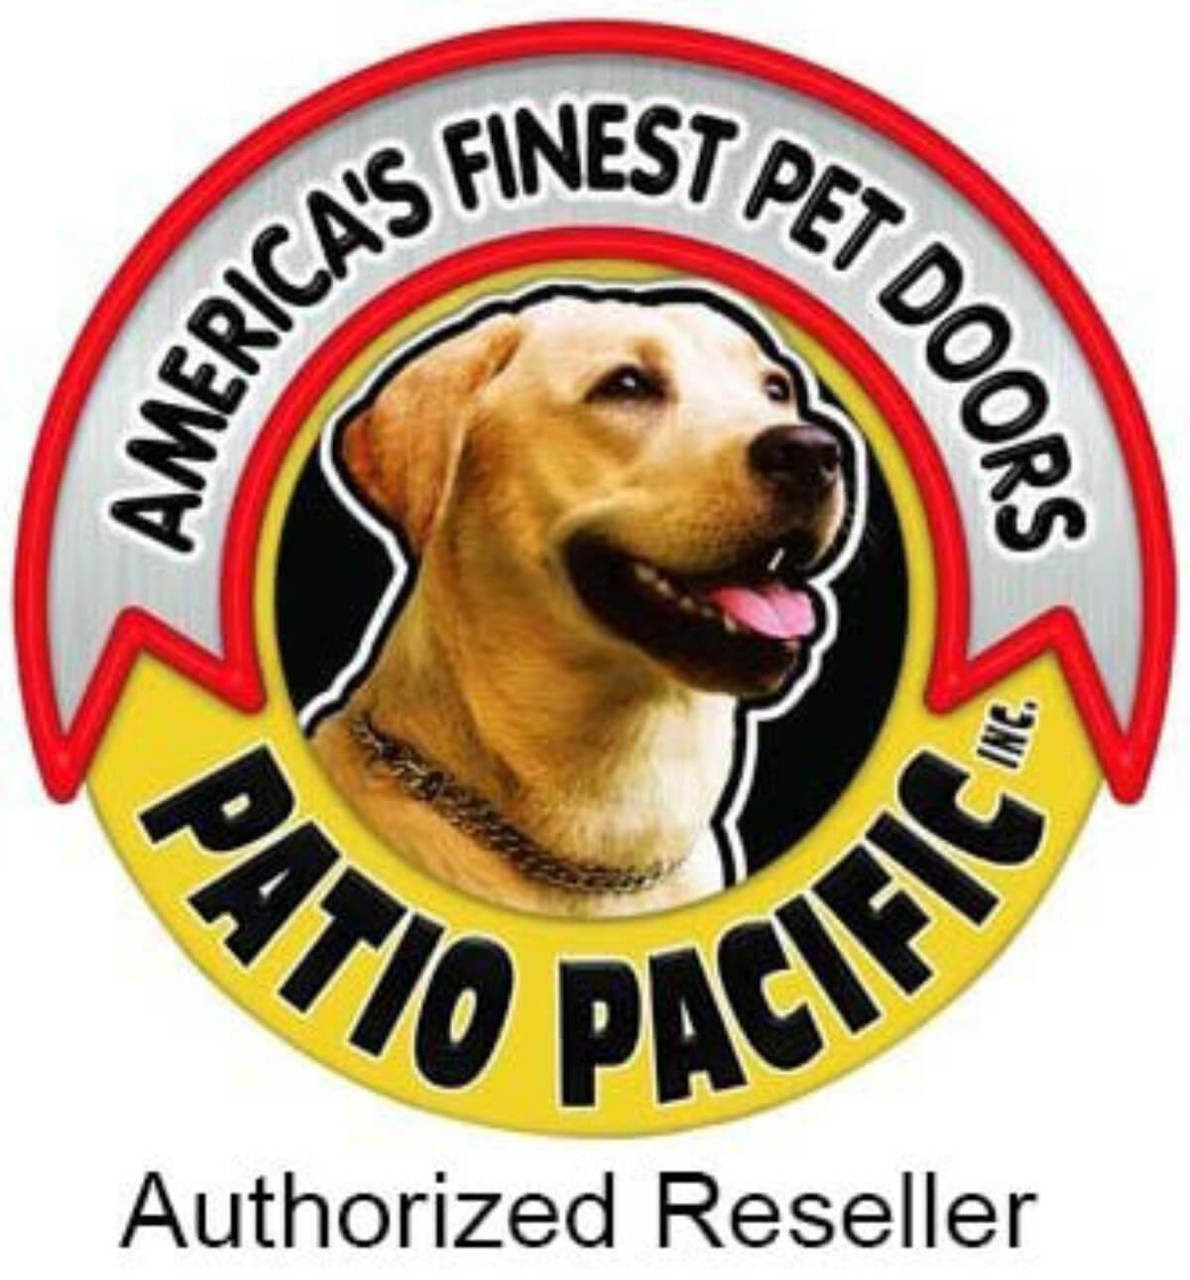 Patio Pacific manufactures Endura Flap pet doors made in USA